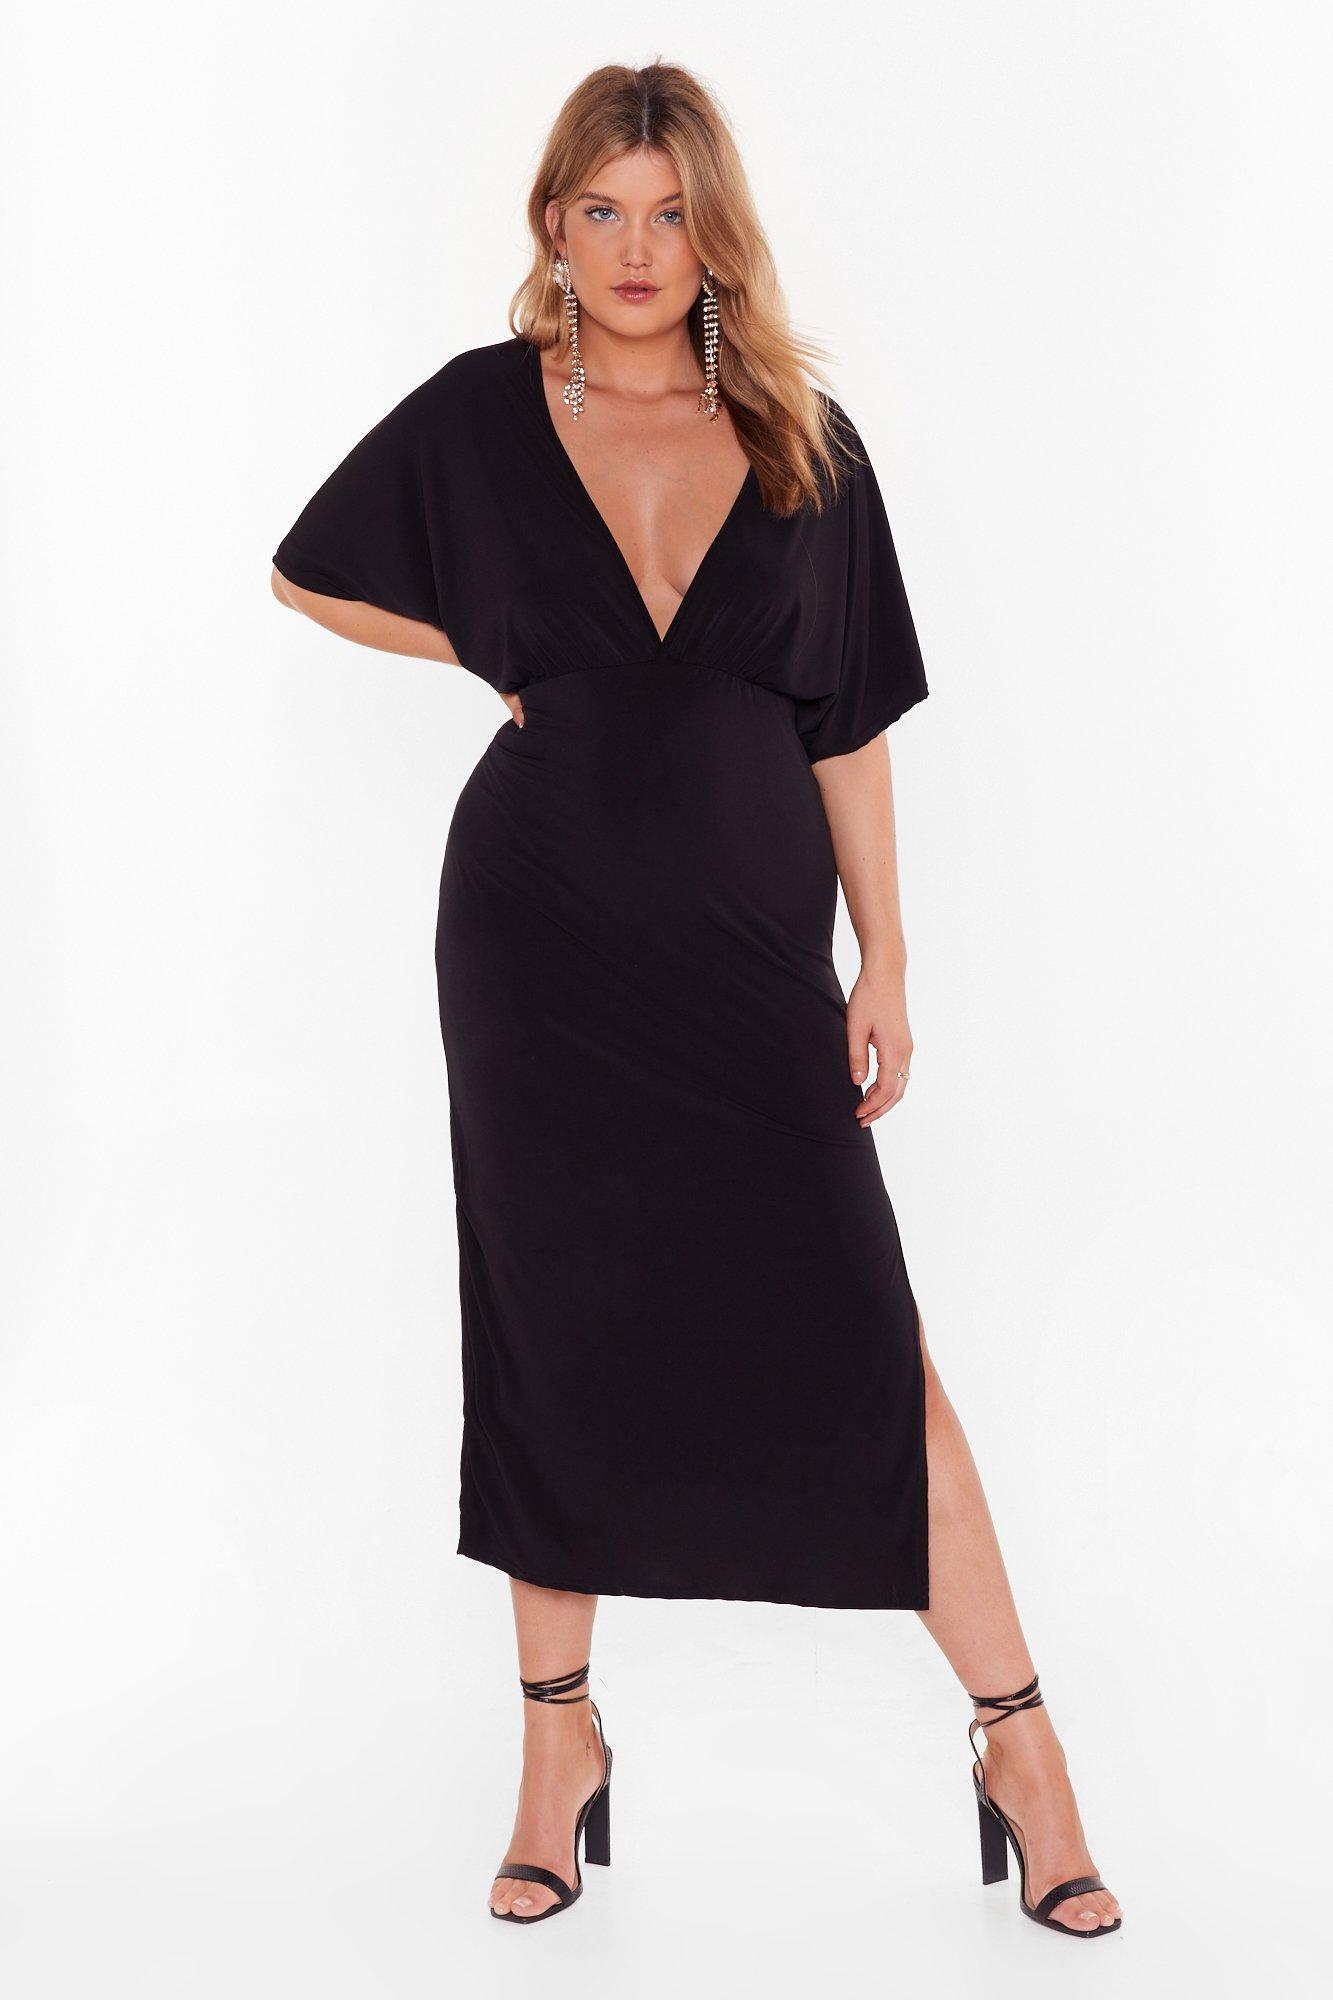 Take V Out Plus Maxi Dress by Nasty Gal